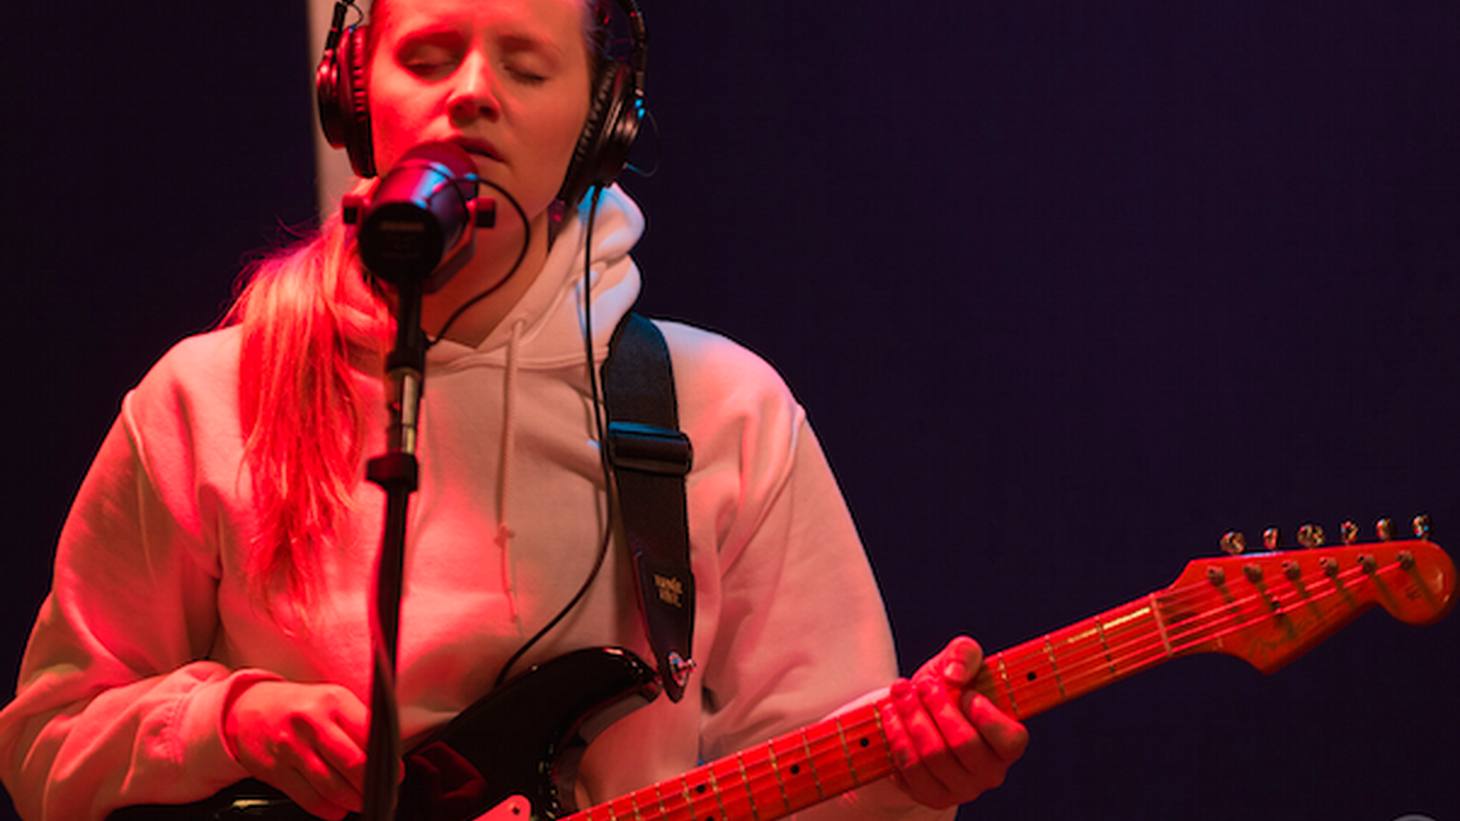 We were first introduced to Toronto-based singer Charlotte Day Wilson when she joined BadBadNotGood to sing guest vocals during their Morning Becomes Eclectic live set last year.